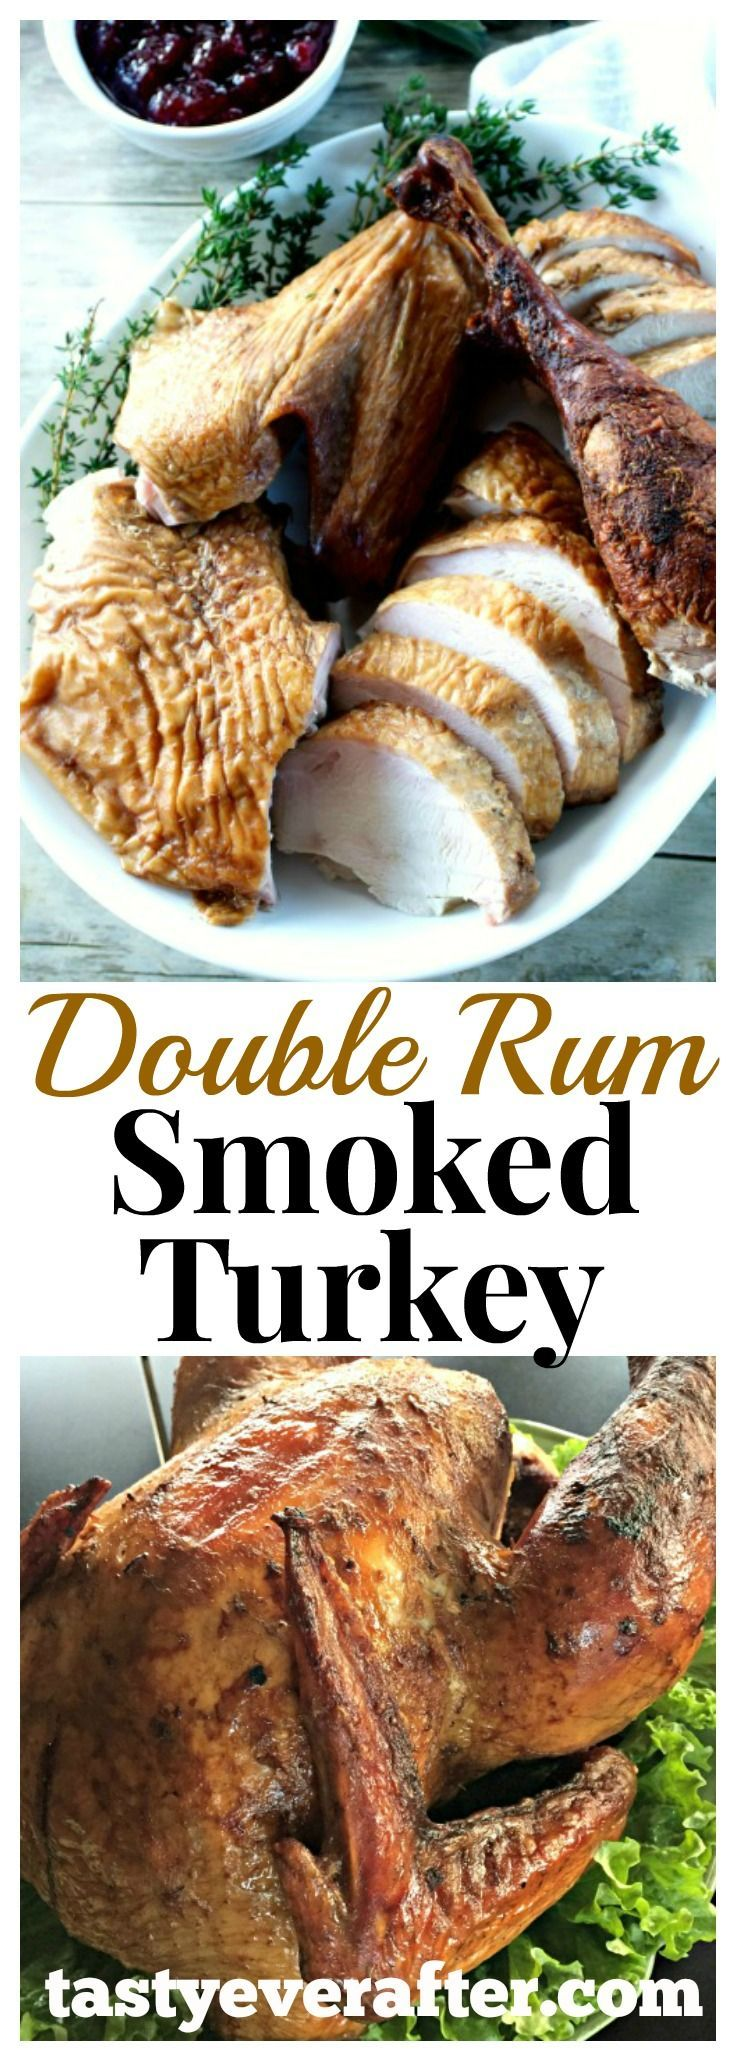 Be different this Thanksgiving and serve up a smoked turkey.  Adapted from a Steven Raichlen Project Smoke recipe.